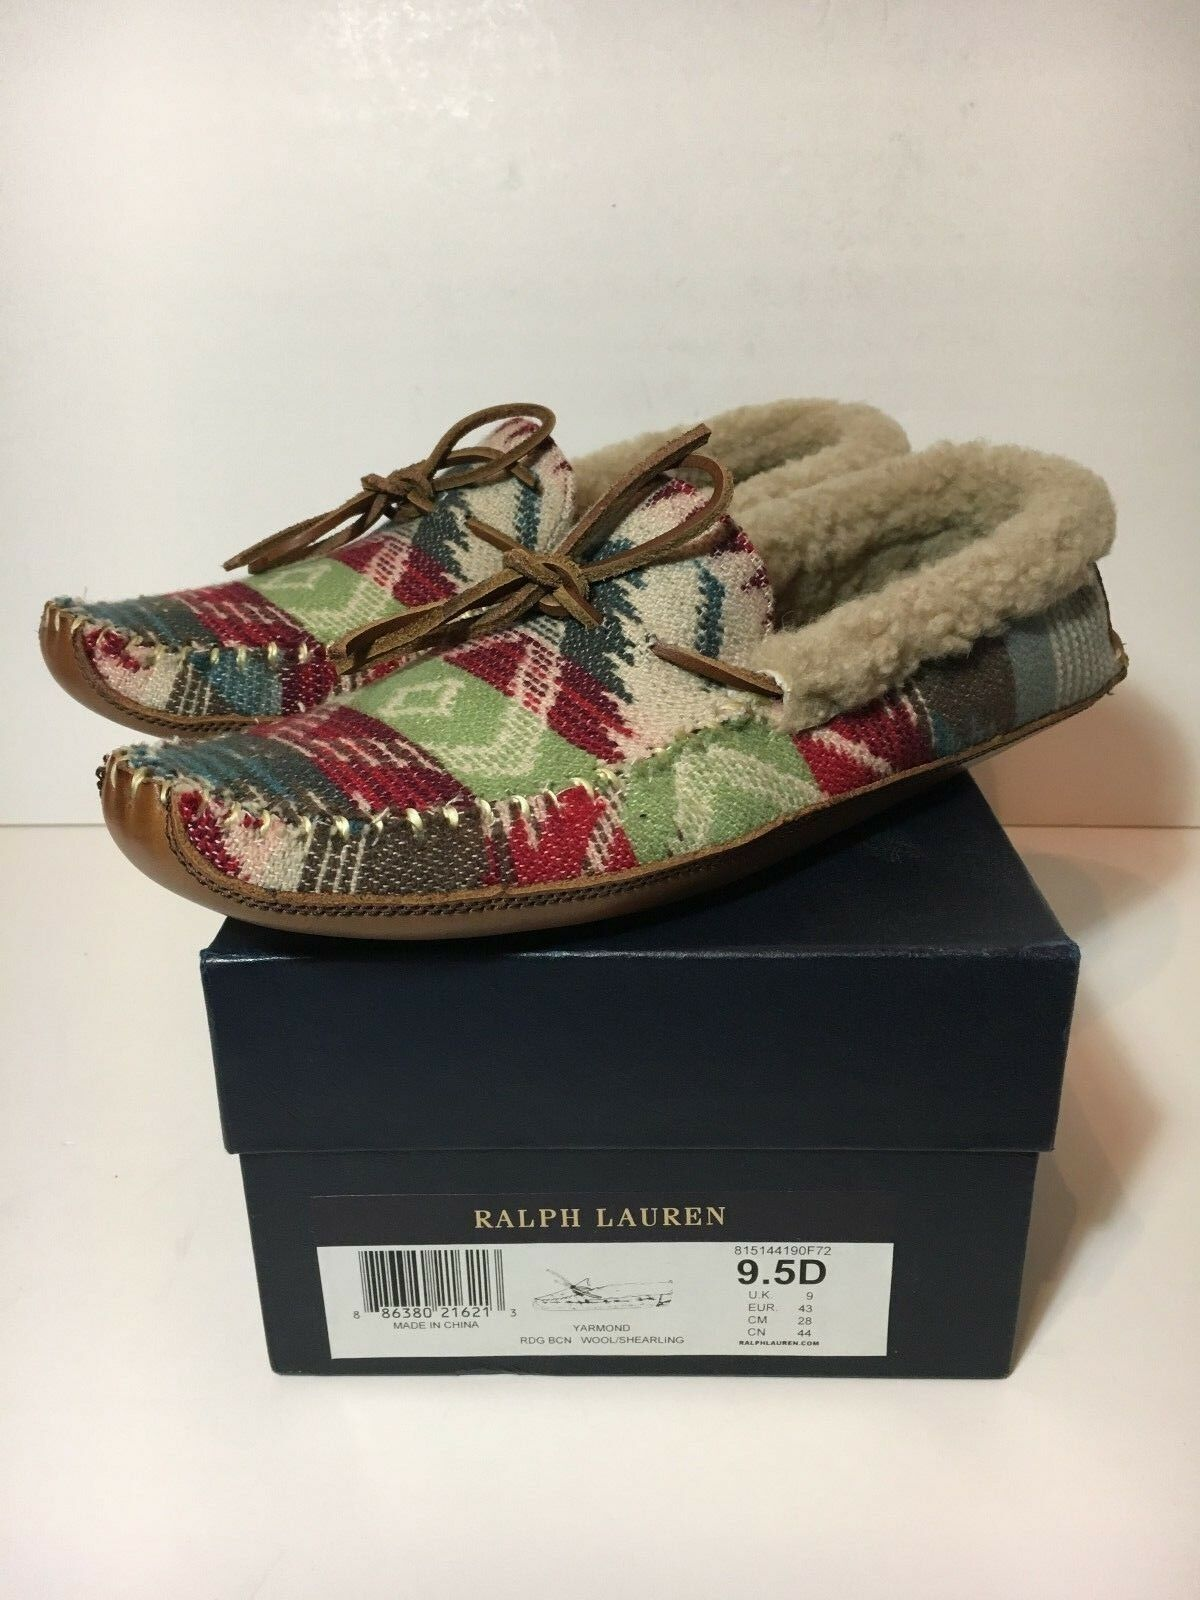 BRAND NEW RALPH LAUREN YARMOND RDG SIZE 9.5 MOCCASSINS NOS NAVAJO INDIAN TRIBE 9